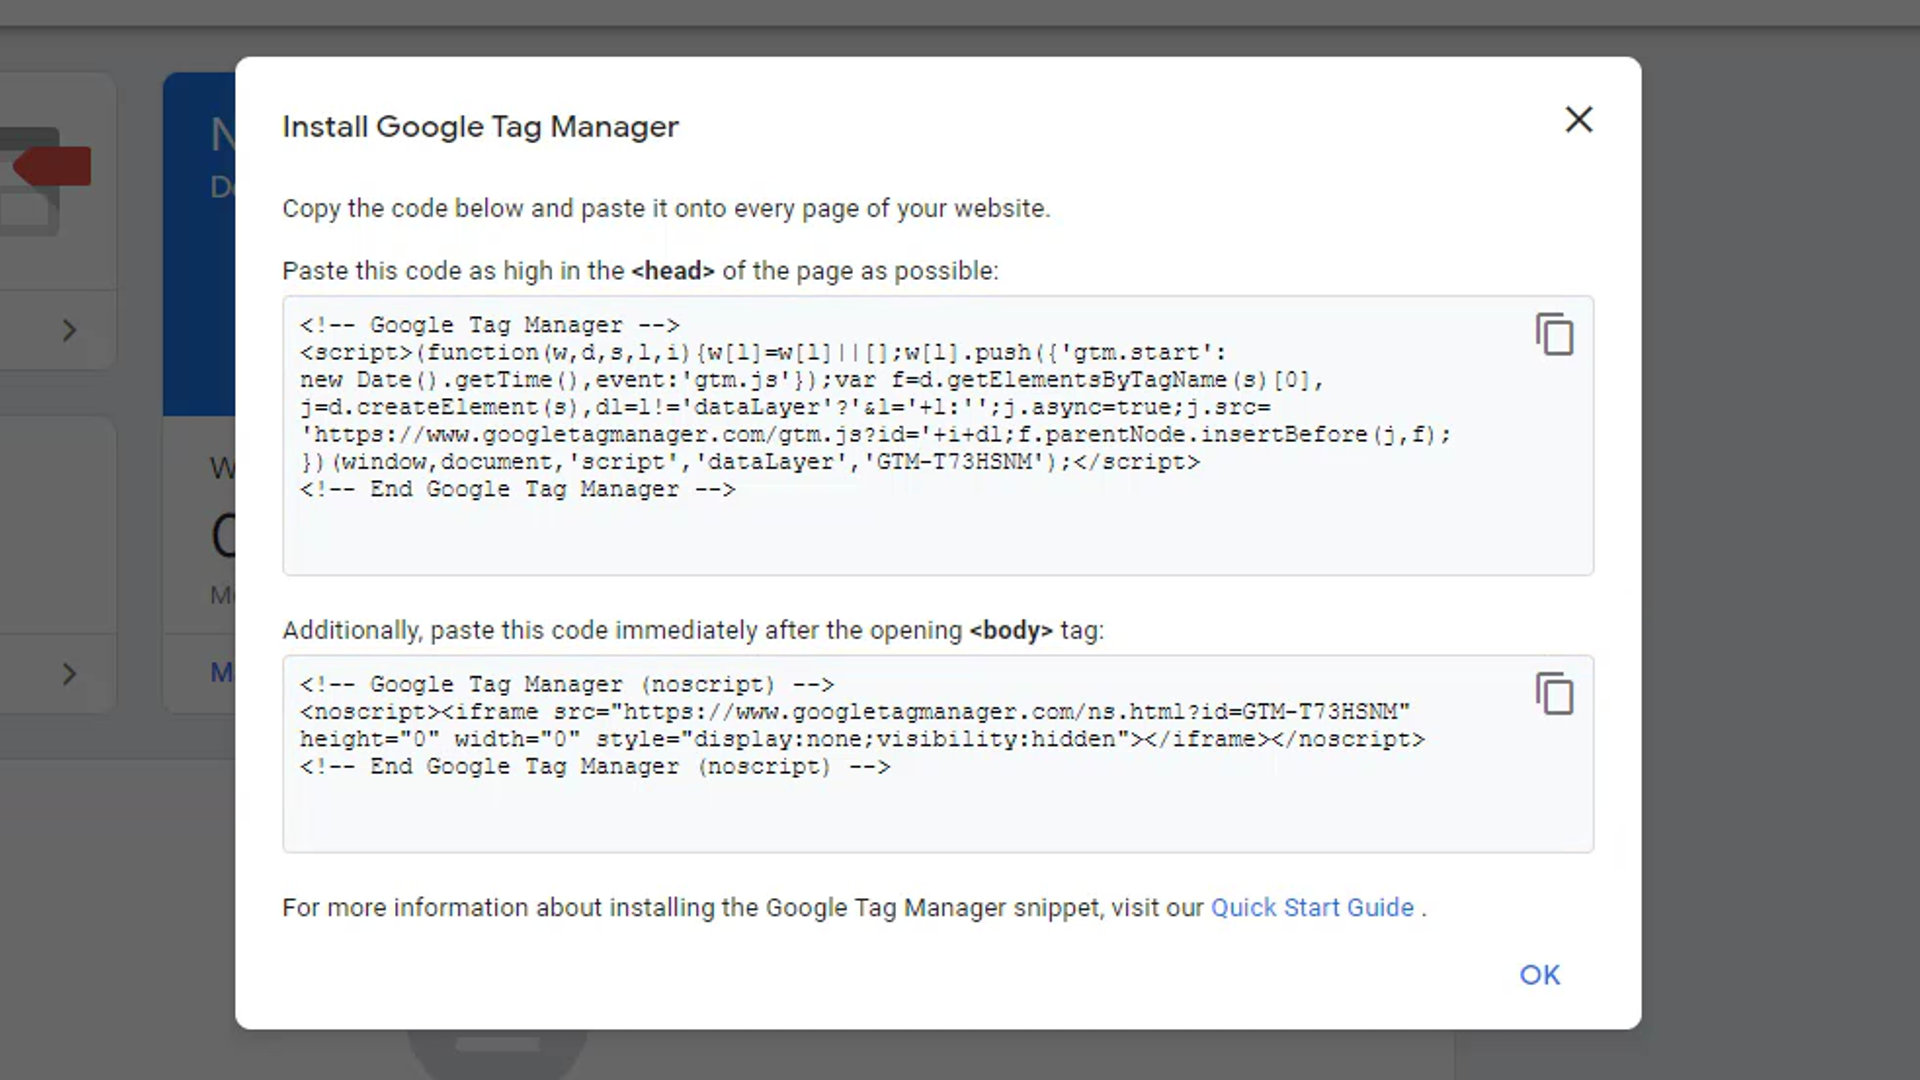 Code snippet provided by Google Tag Manager